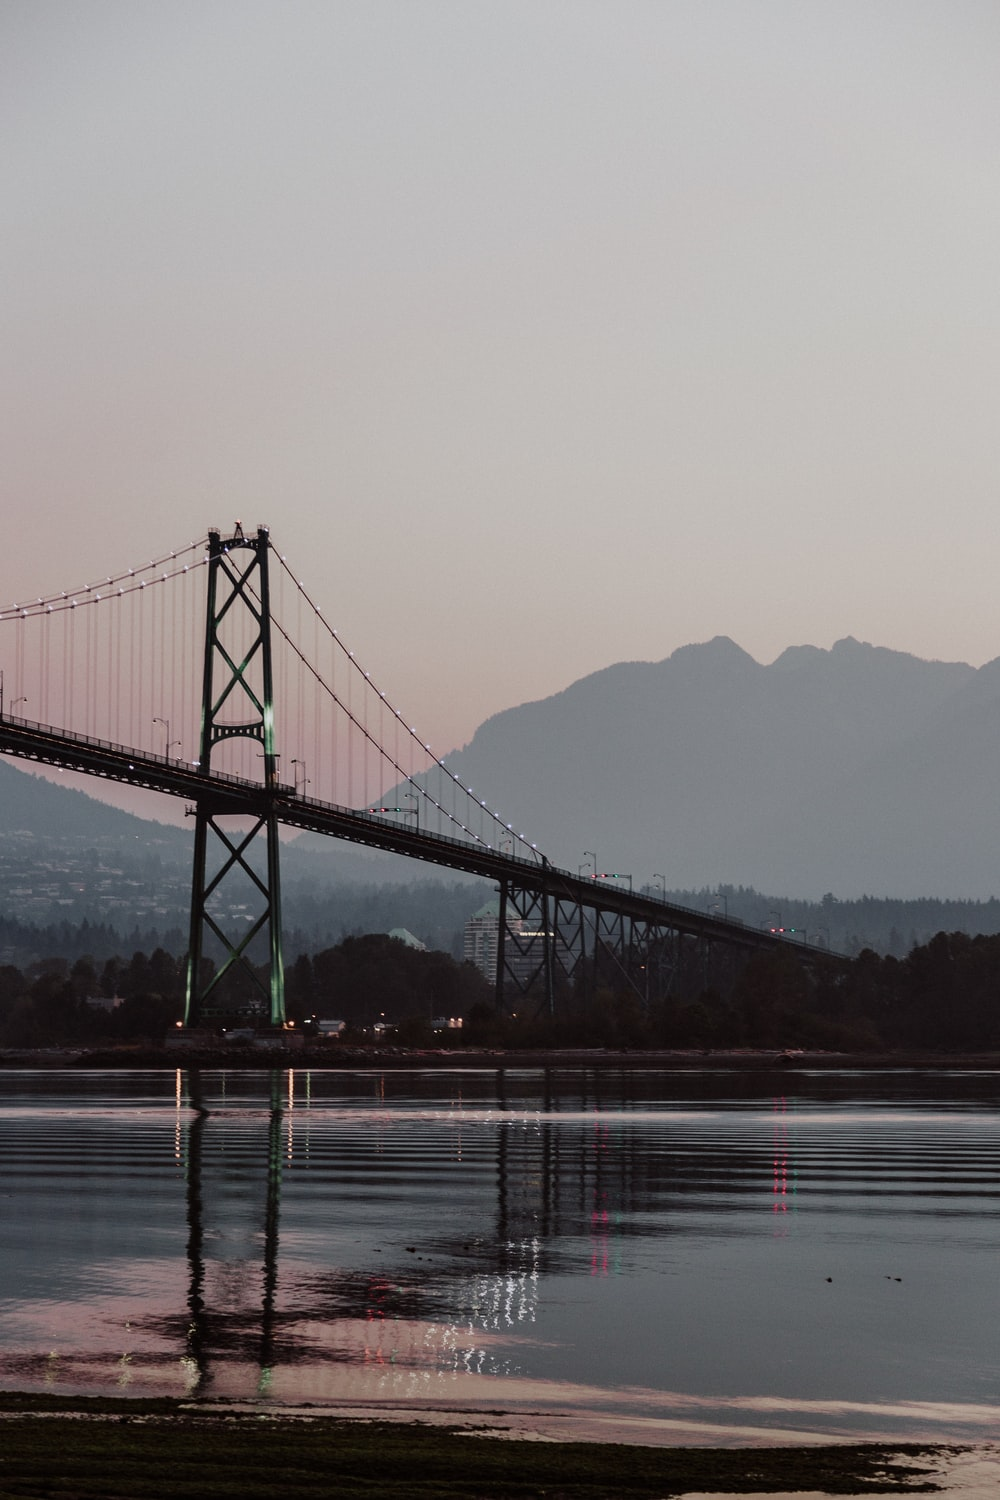 scenery of bridge in front of silhouette of mountain